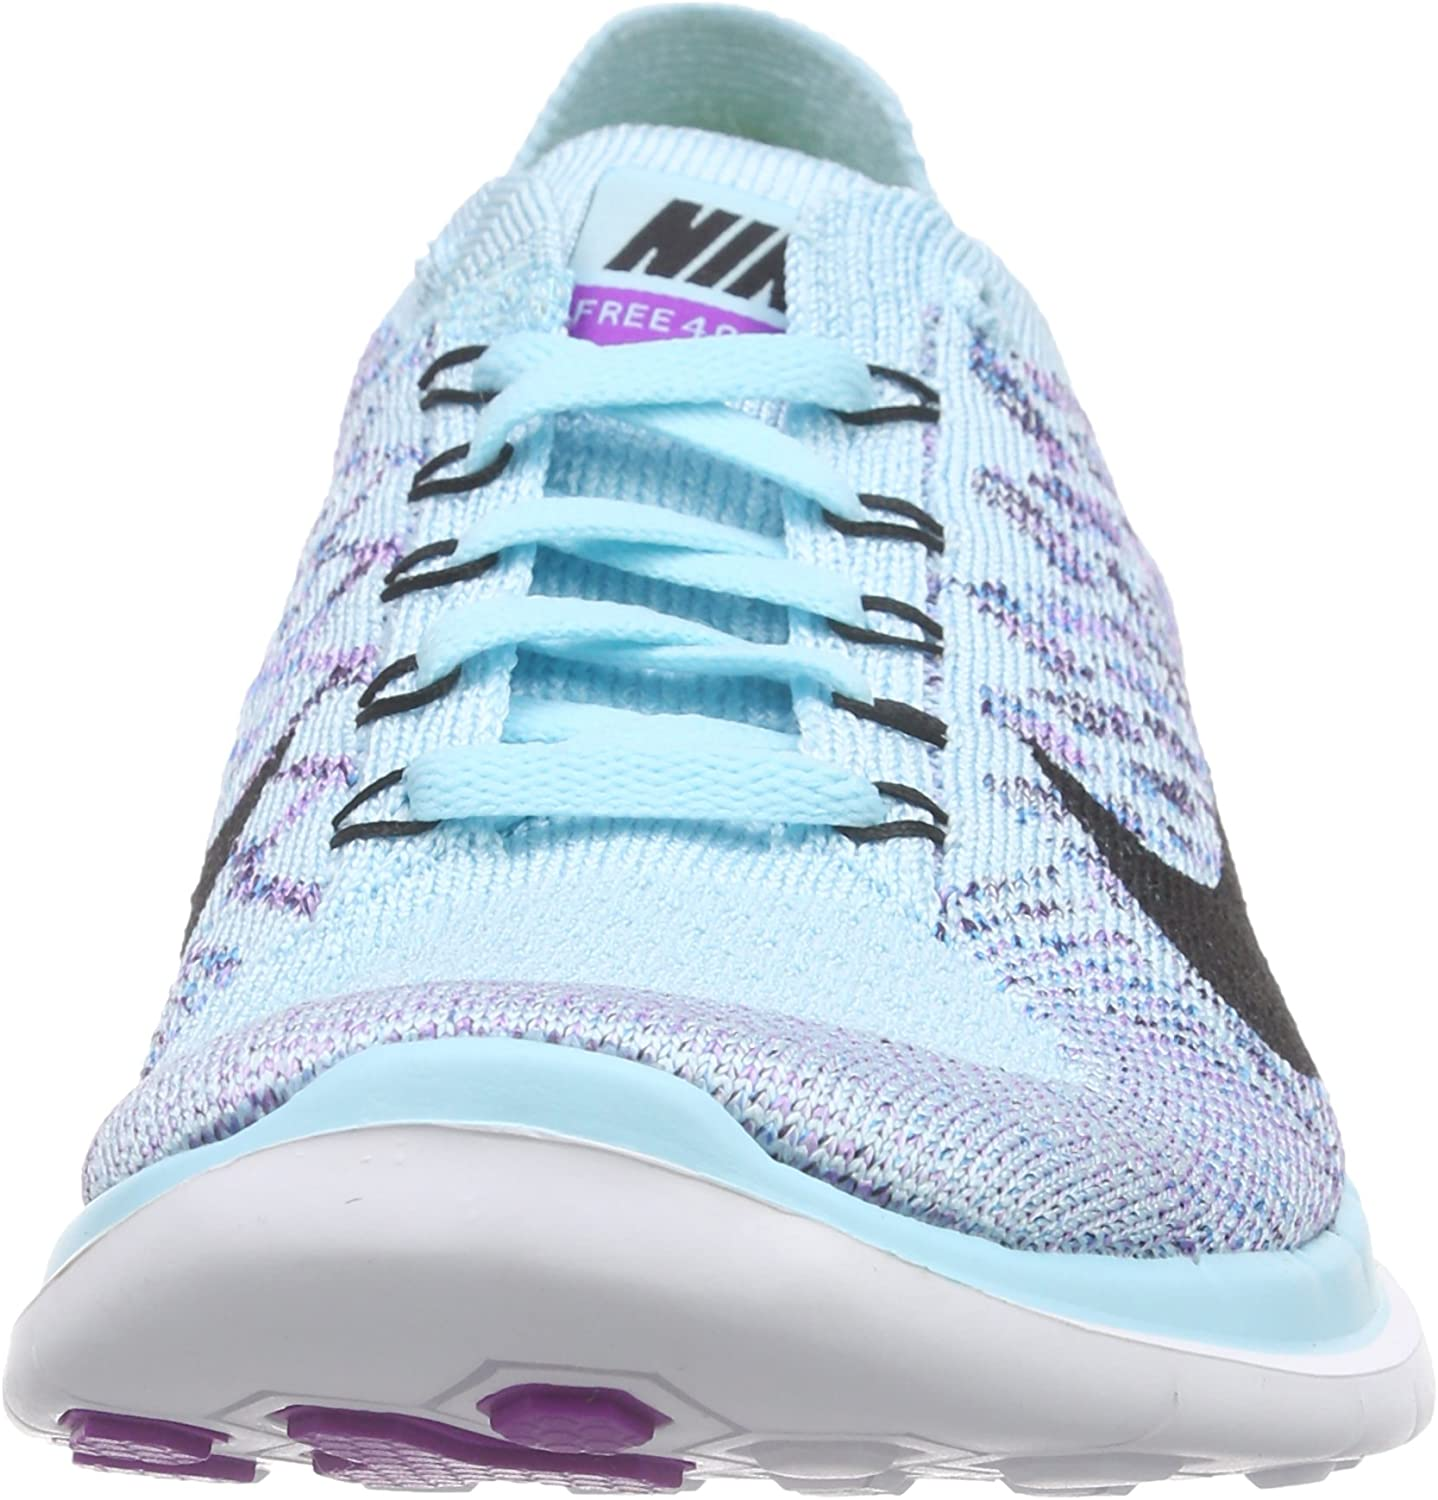 NIKE Womens Free Flyknit 4.0 Copa Blue Lagoon Grand Purple Black